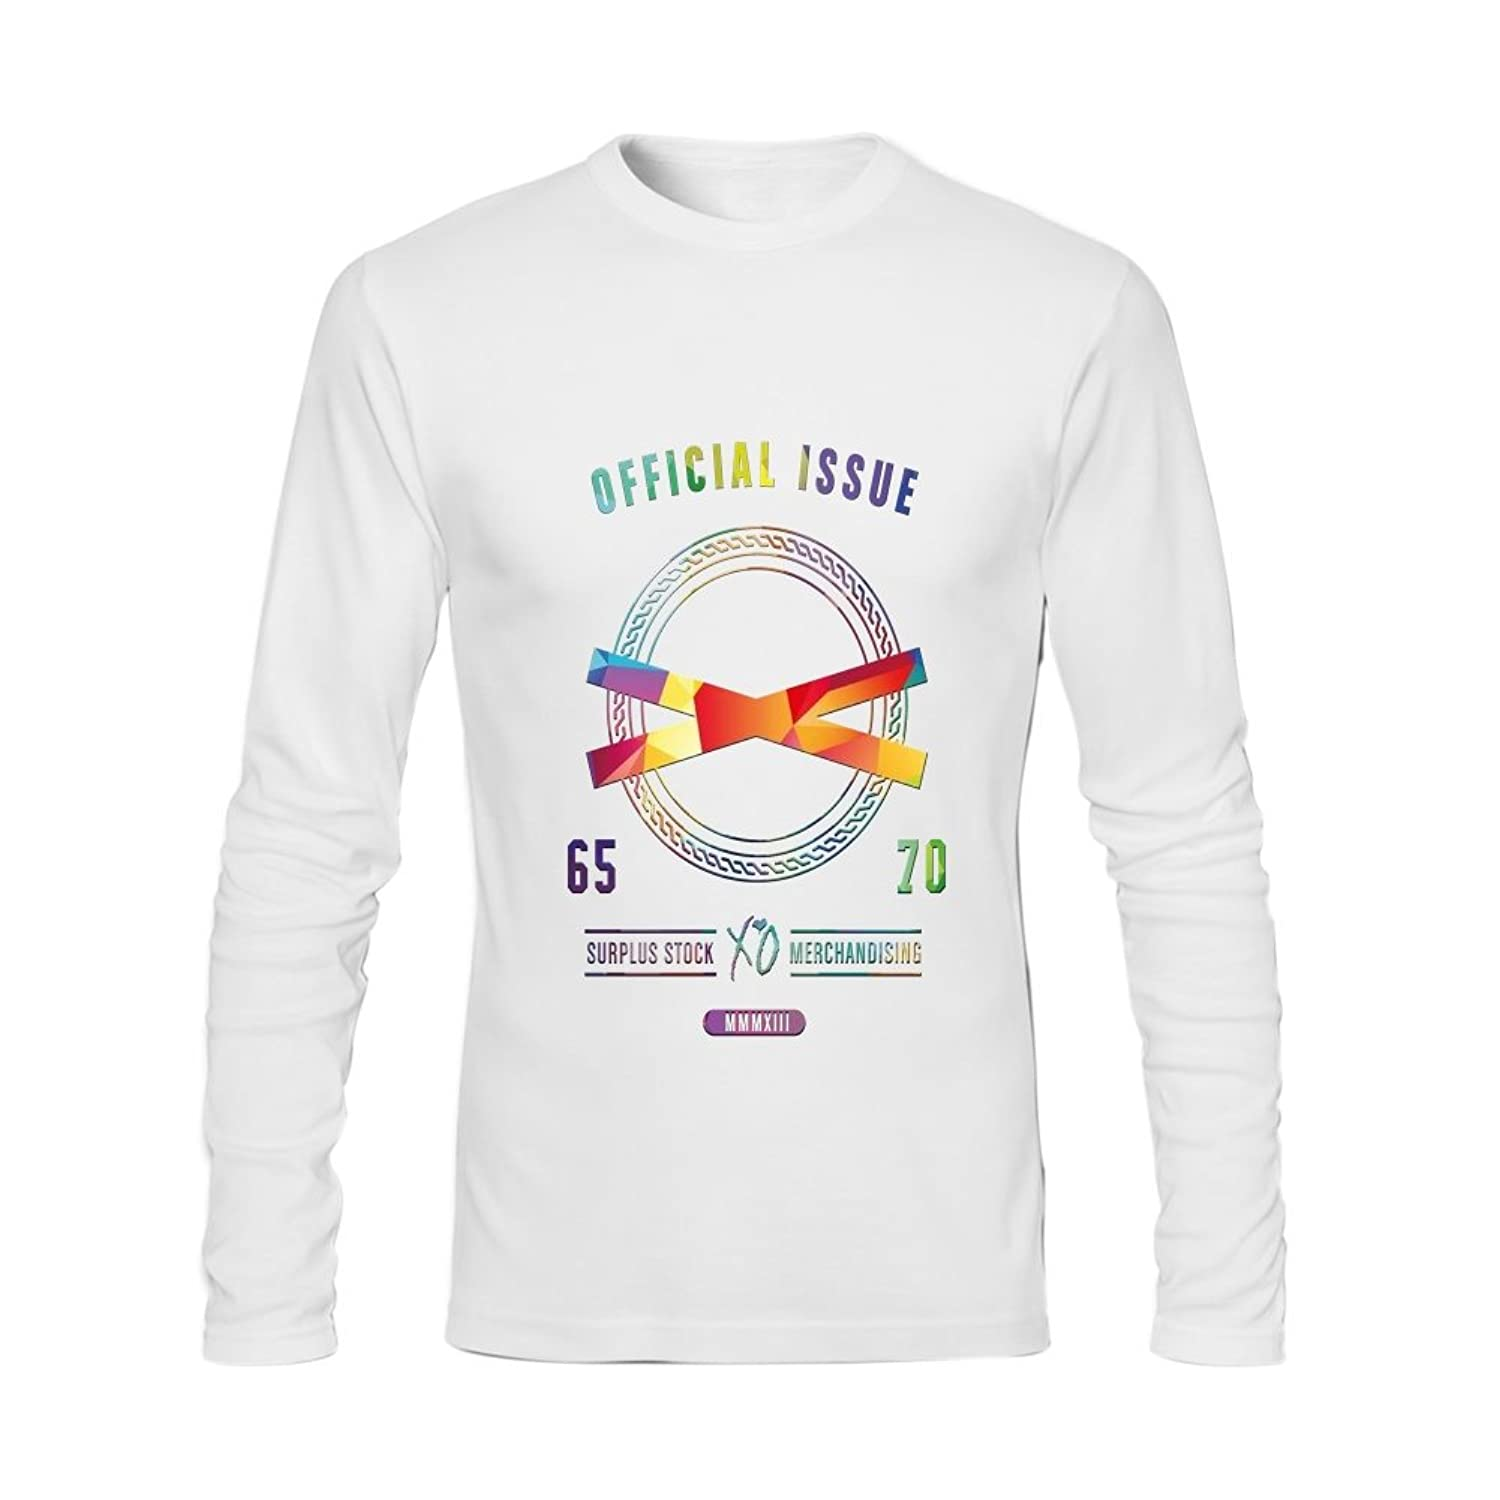 Anydover Official Issue Mens 100% Cotton Crew Neck Long Sleeve T-Shirt M White